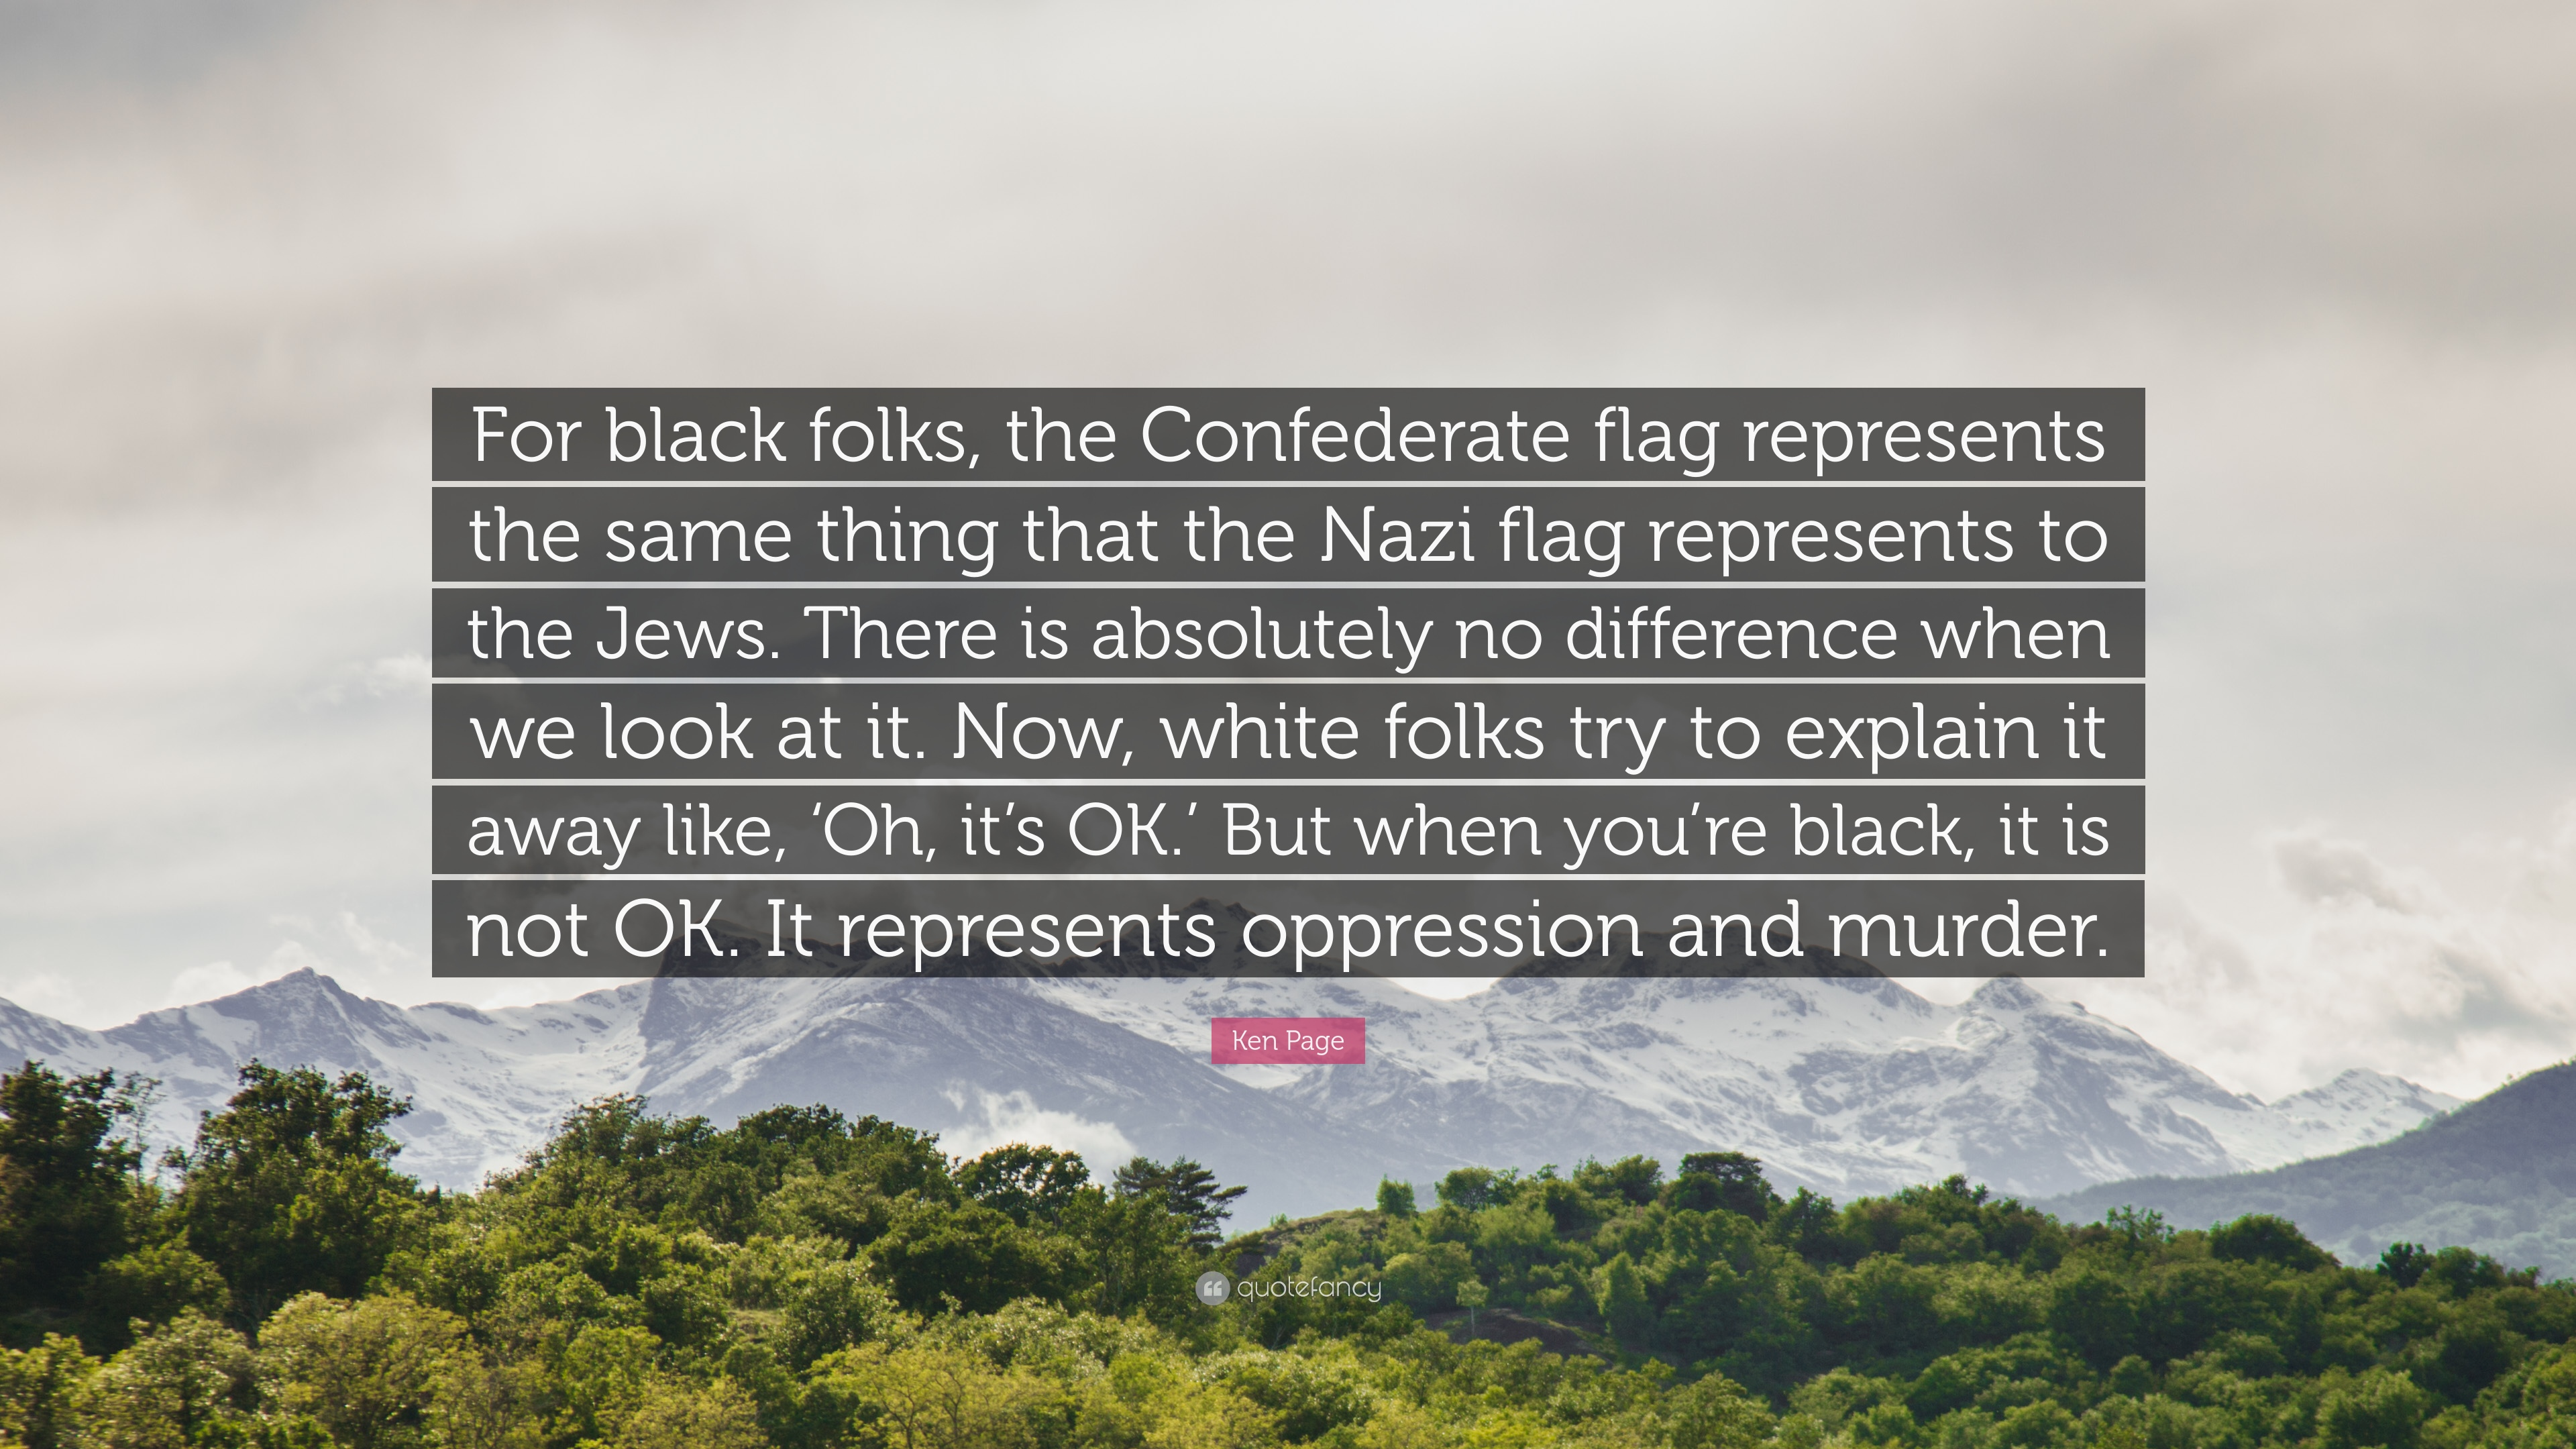 ken page quote for black folks the confederate flag represents